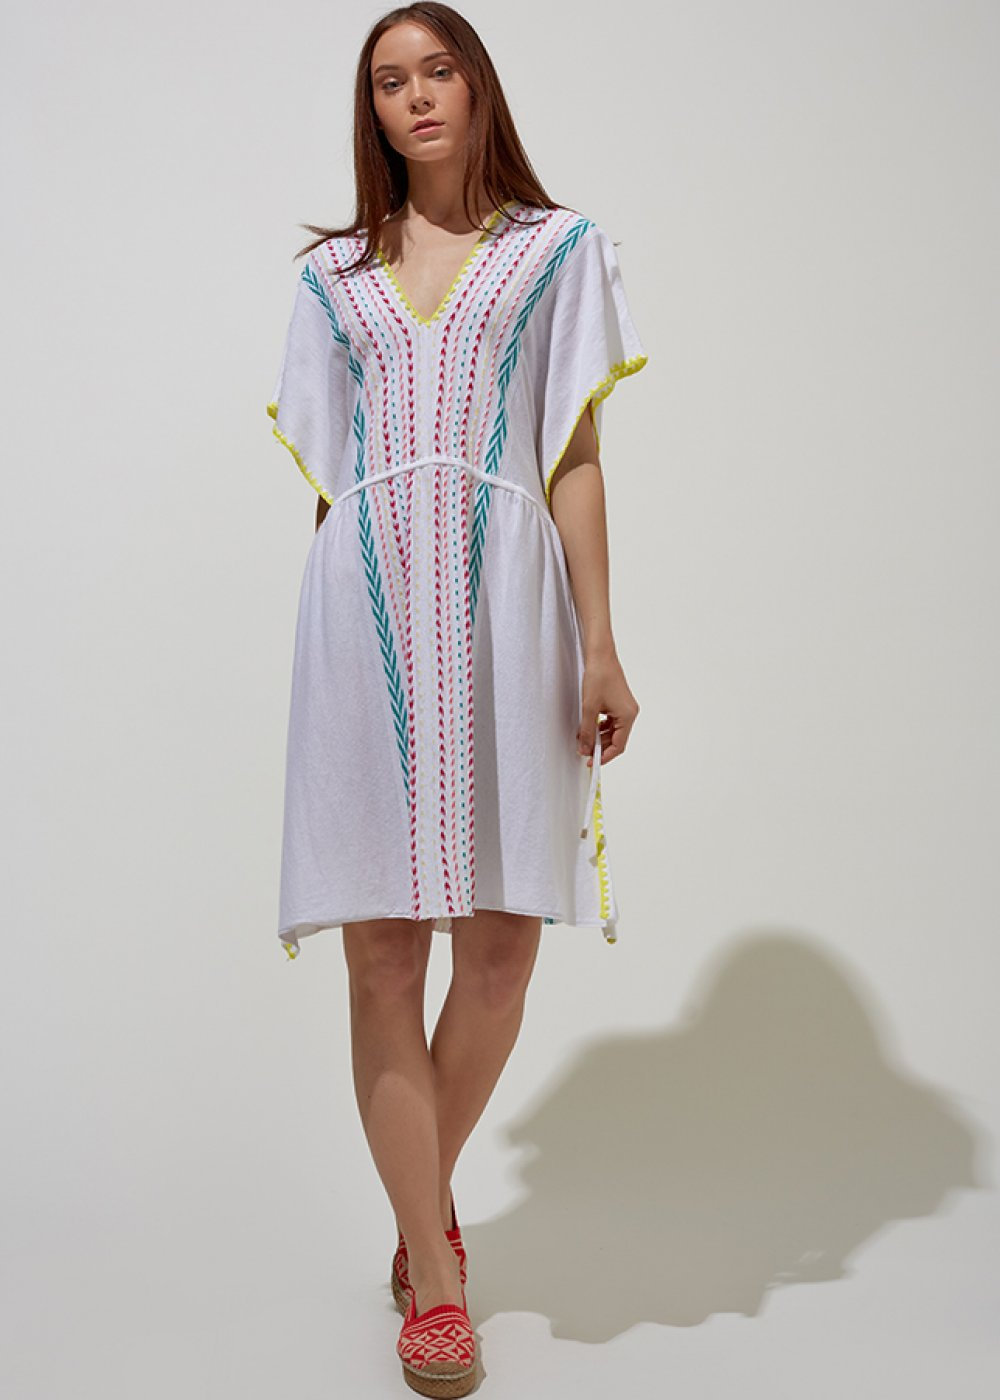 Oversized Pearl Knit Beach Dress